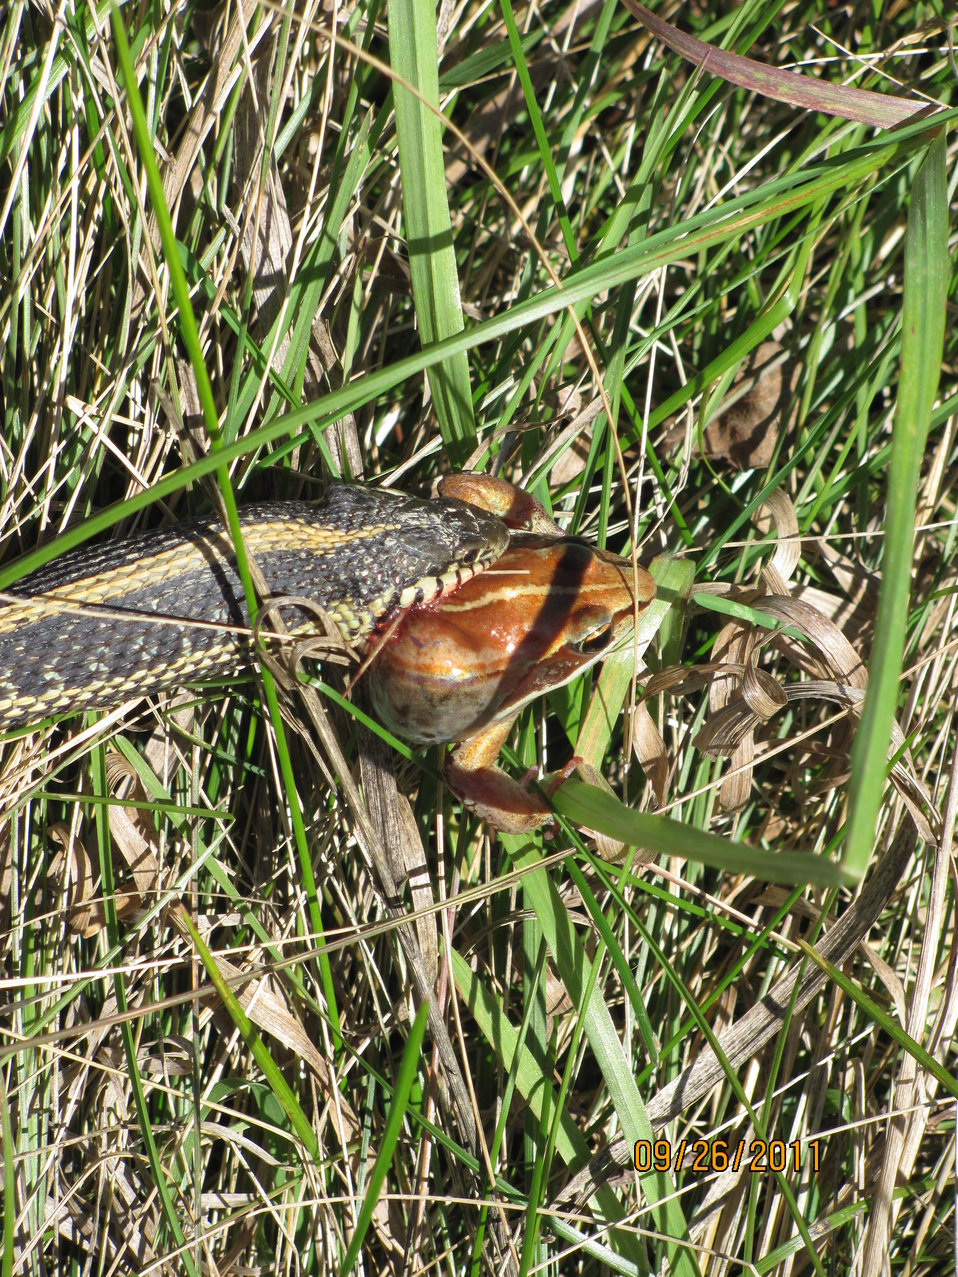 Common Garter Snake eats a Wood Frog